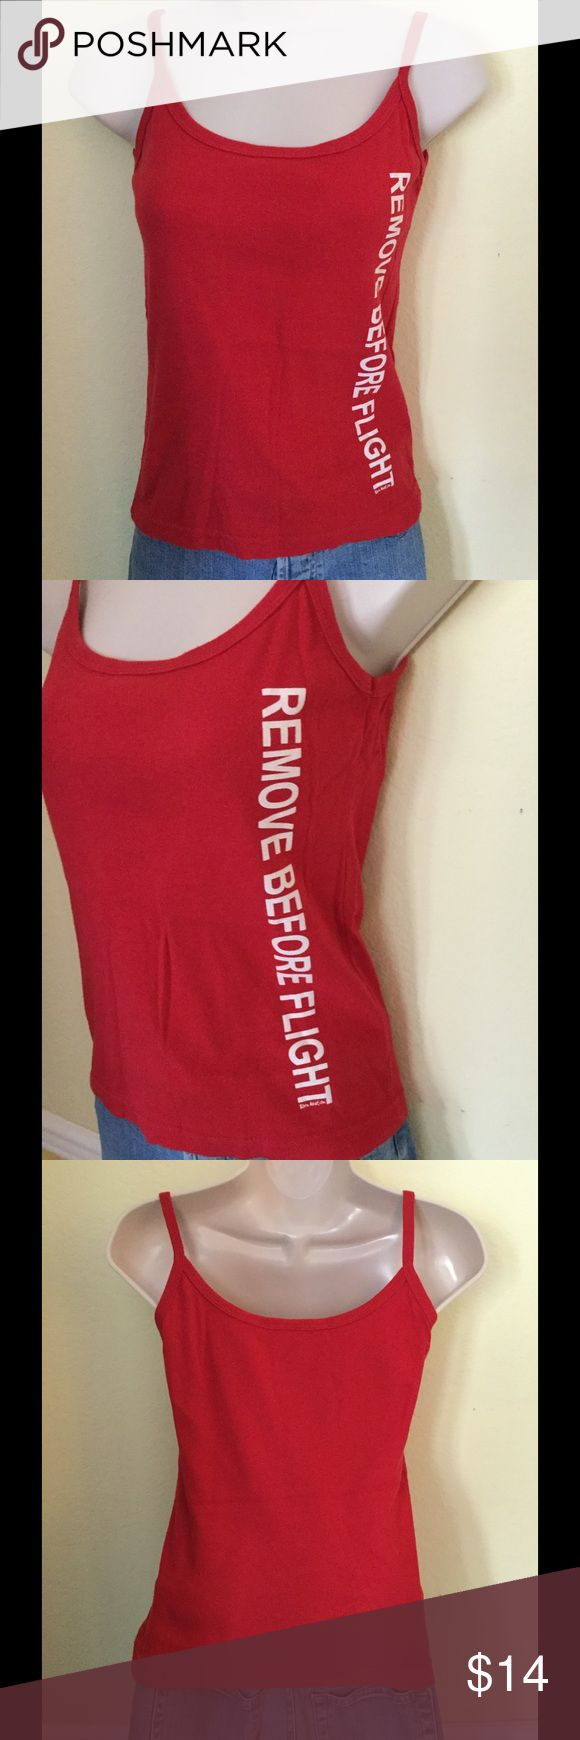 """""""Remove Before Flight"""" red tank top, size small Red tank top with the words """"Remove Before Flight"""" down the side in white lettering.  Size small.  Only worn once. gaziani Tops Tank Tops"""